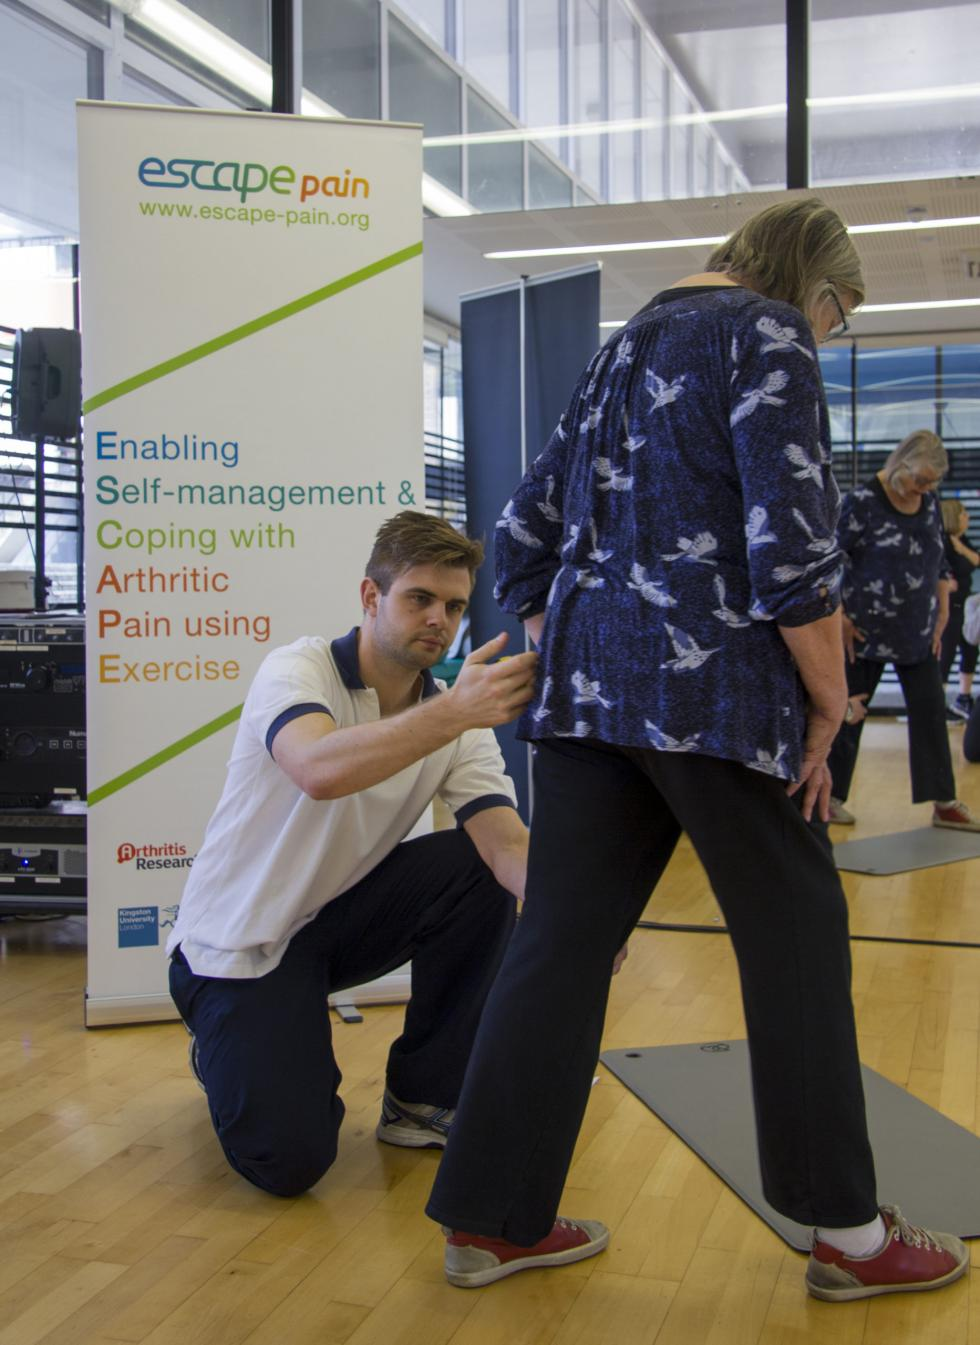 Joint pain programme ESCAPE-pain and young people's Type 1 diabetes initiative win awards